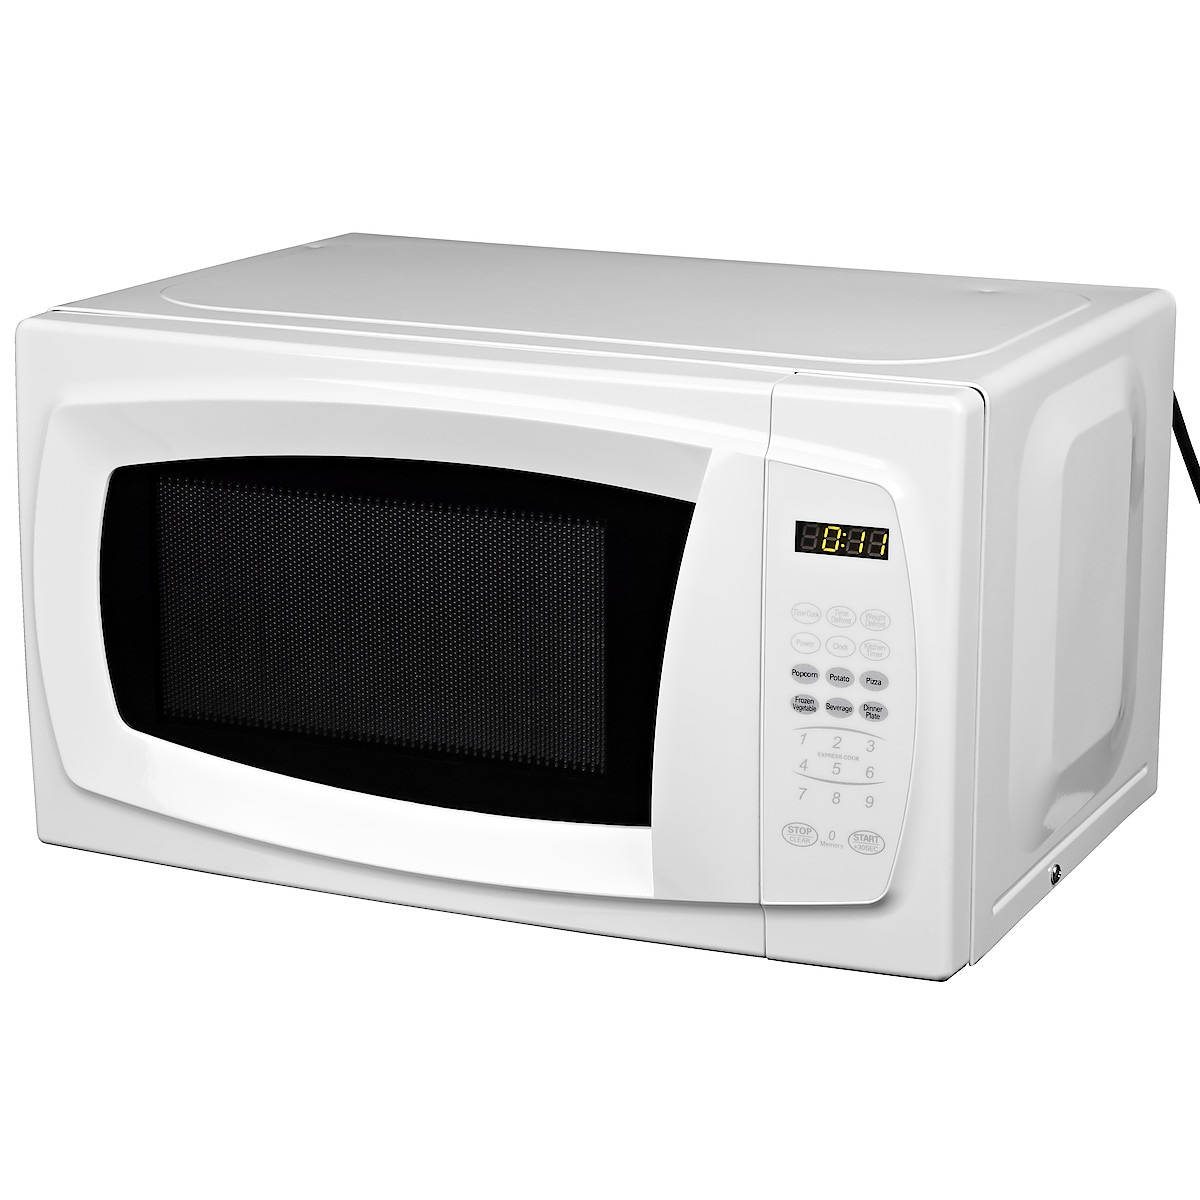 Coline Microwave Oven